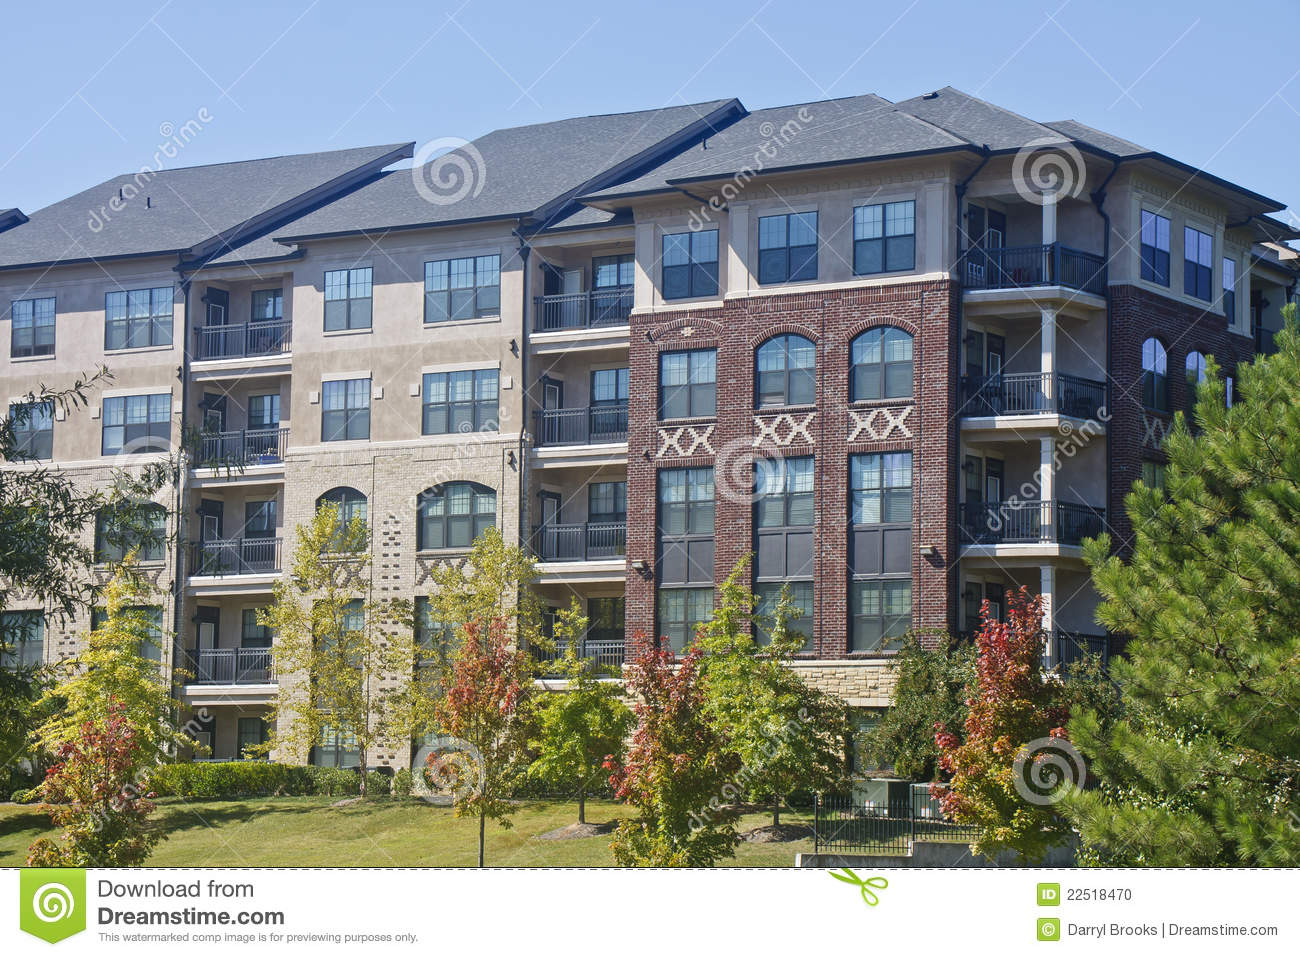 Brick Apartment Building Illustration. Modern Brick and Stucco Apartment Building And Stock Photo  Image of